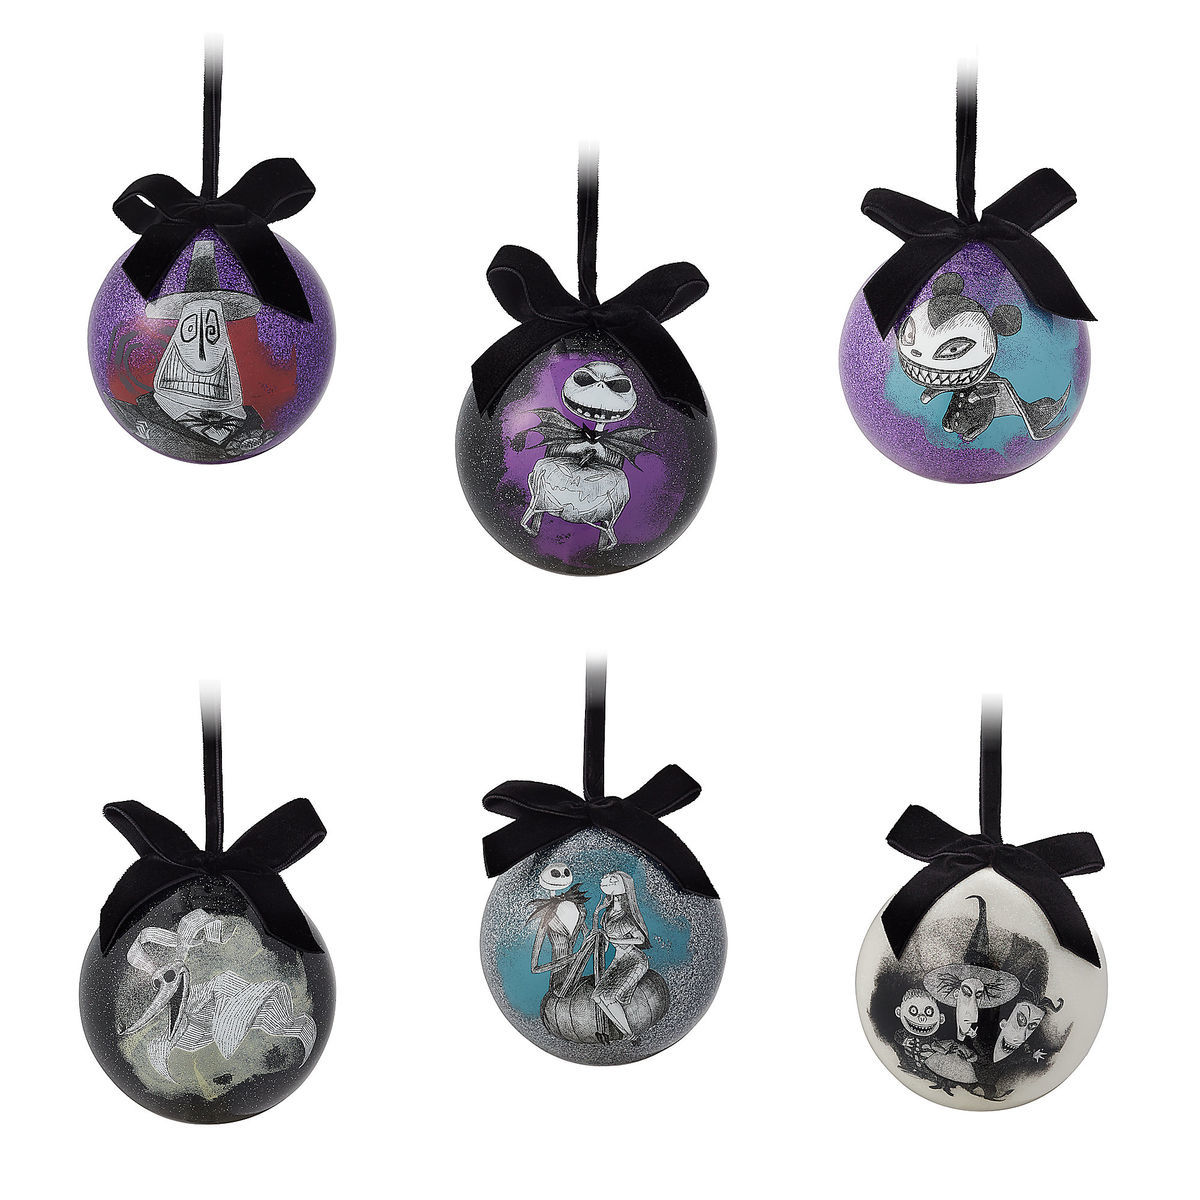 888b24fd10f4e Product Image of The Nightmare Before Christmas Ball Ornament Set   1